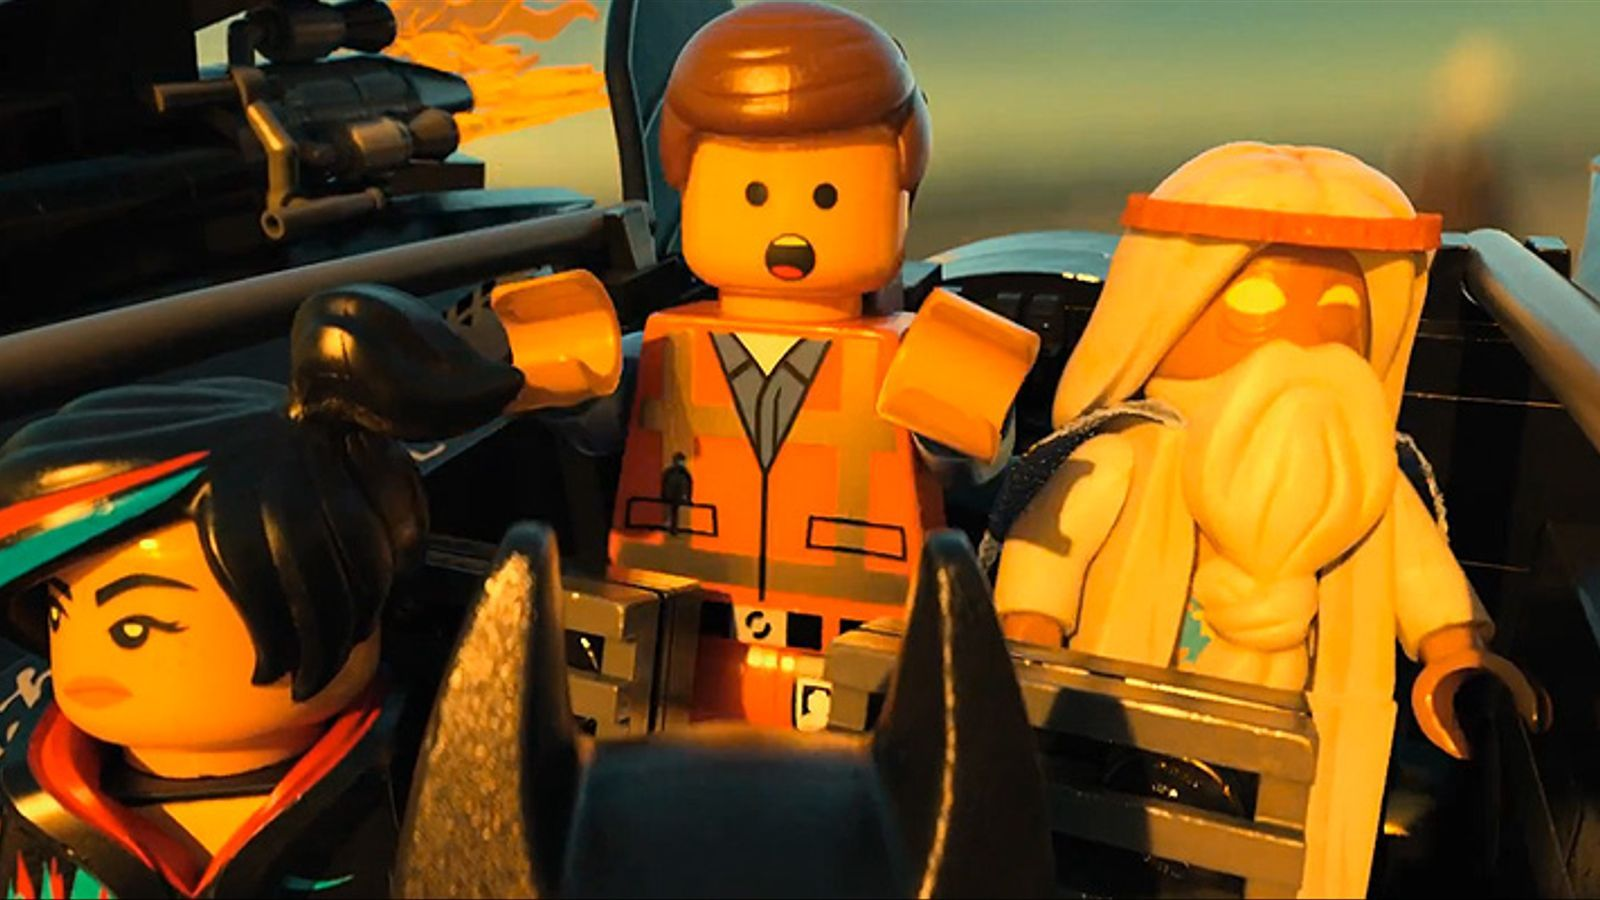 Tràiler de 'The Lego movie'